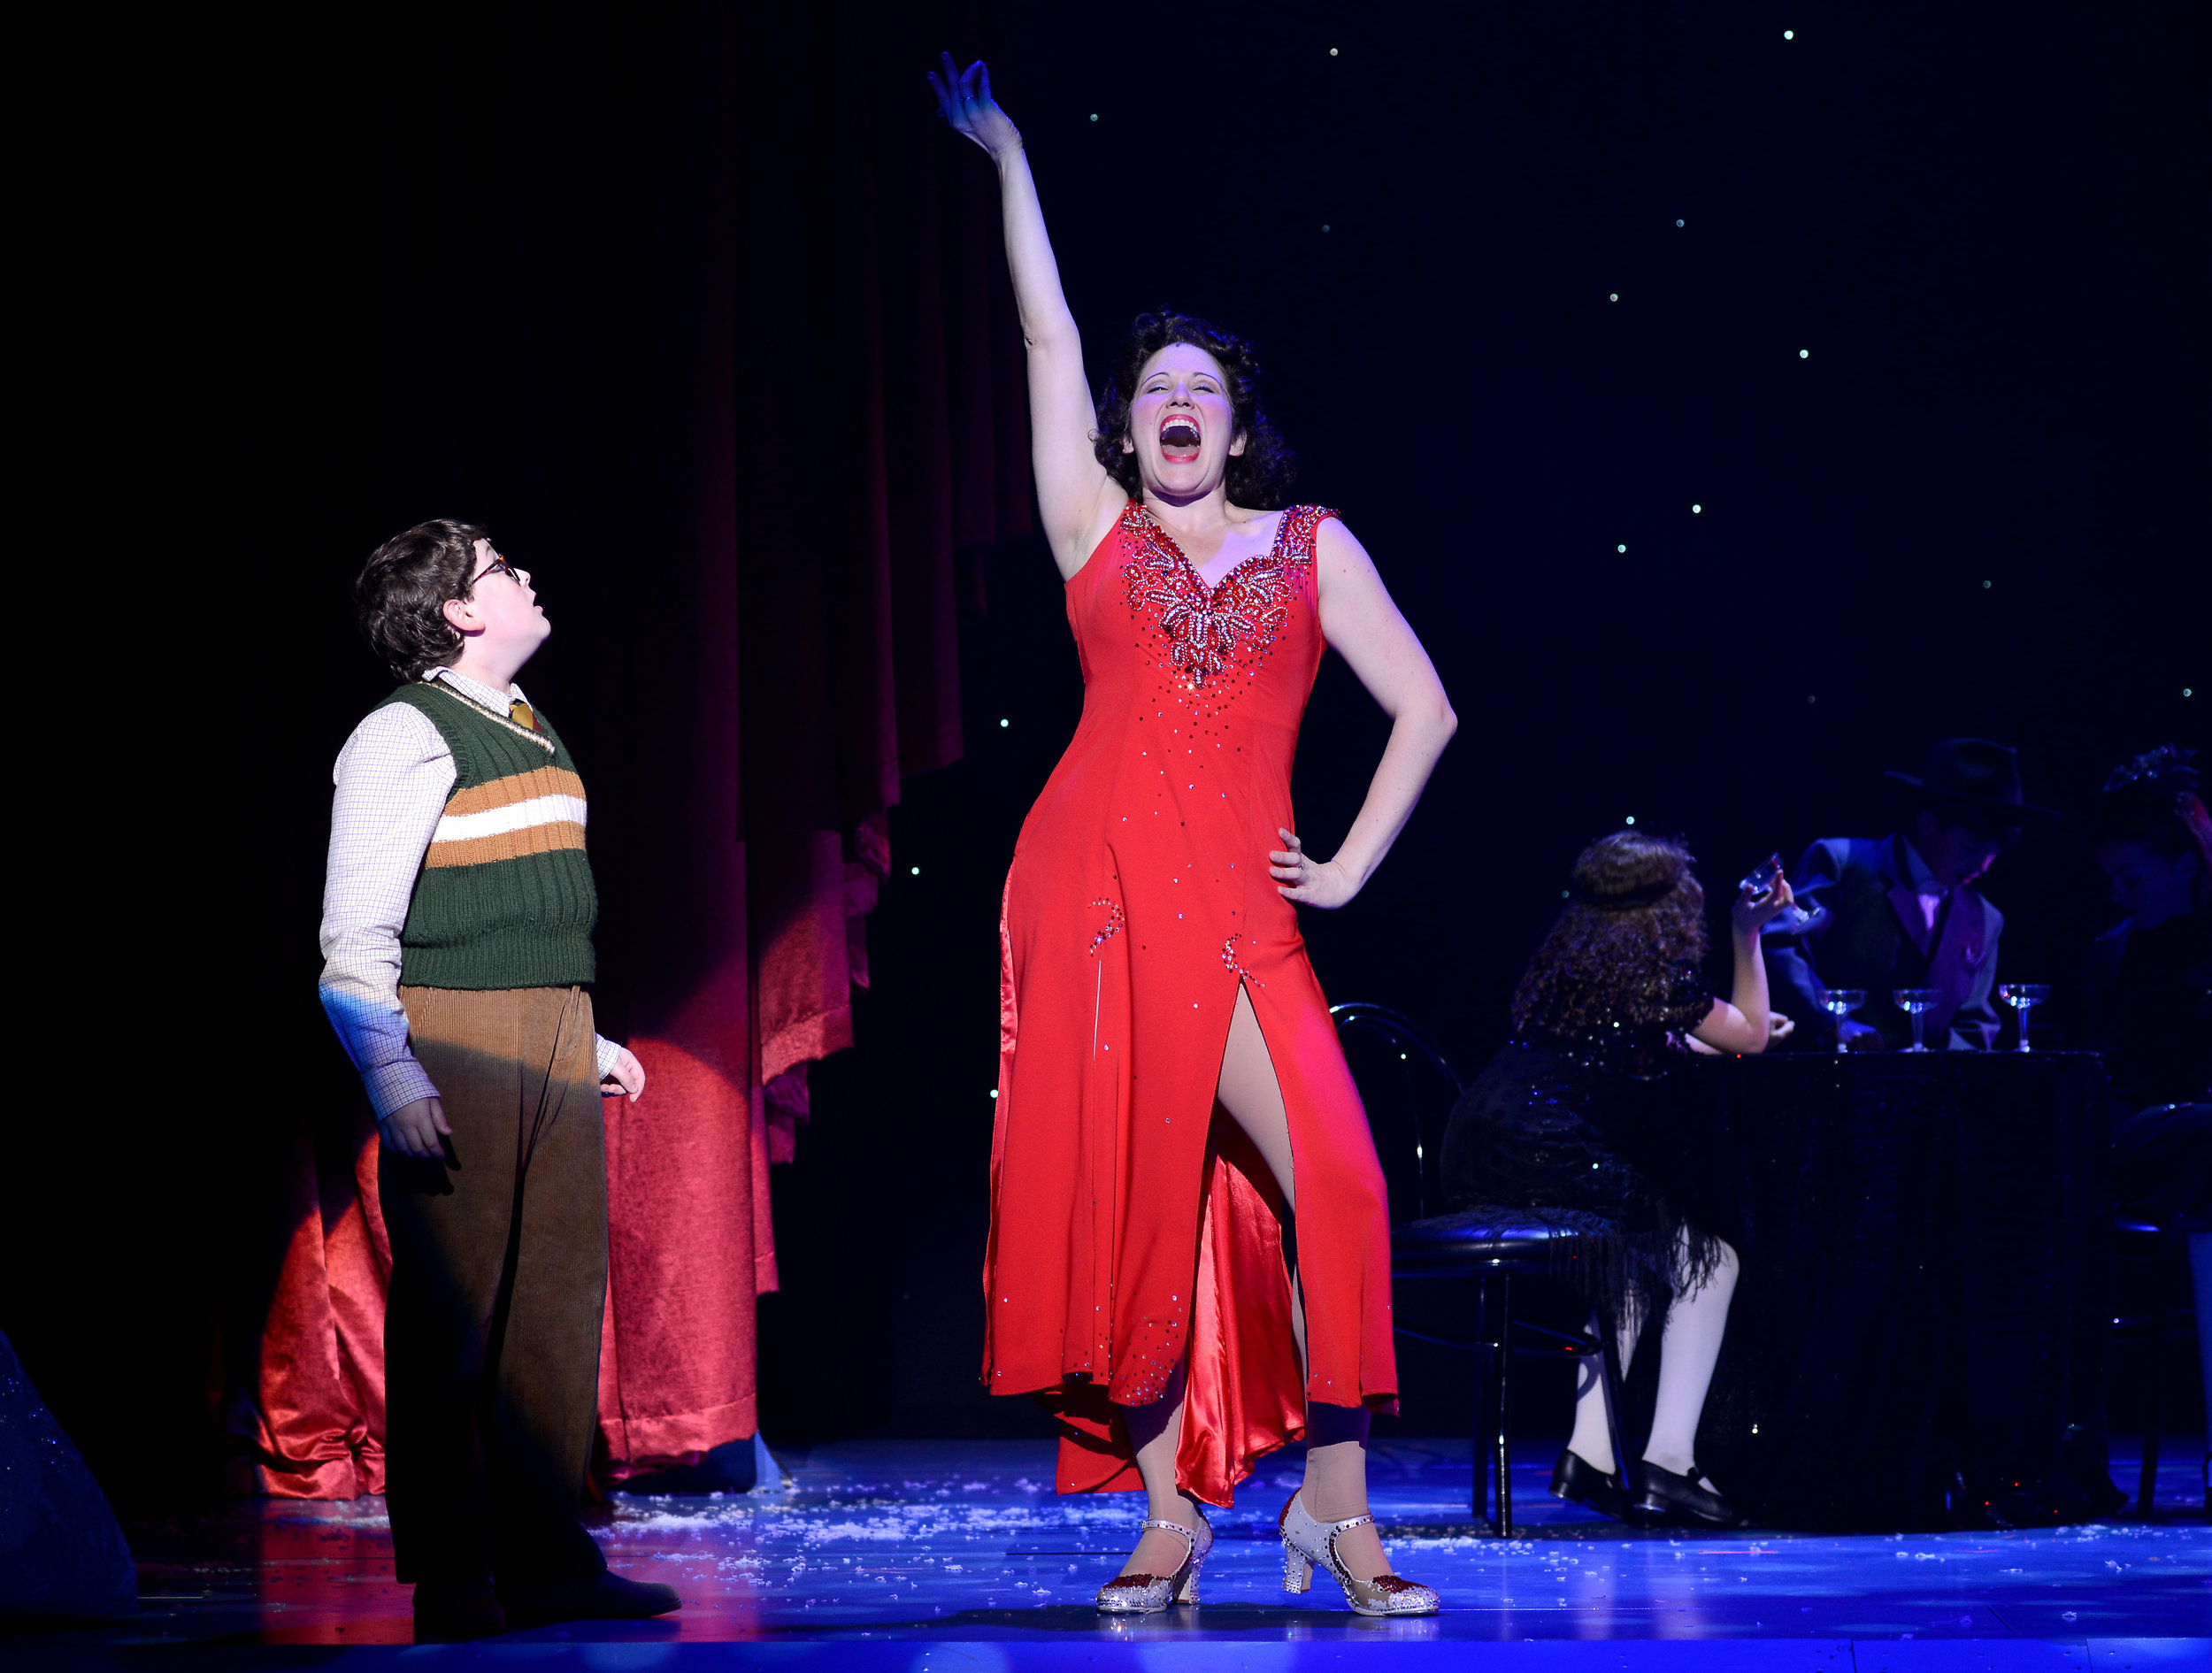 Photo 1 - Avital_Asuleen_as_Mrs_Shields_and_Evan_Gray_as_Ralphie_in_A_CHRISTMAS_STORY.JPG